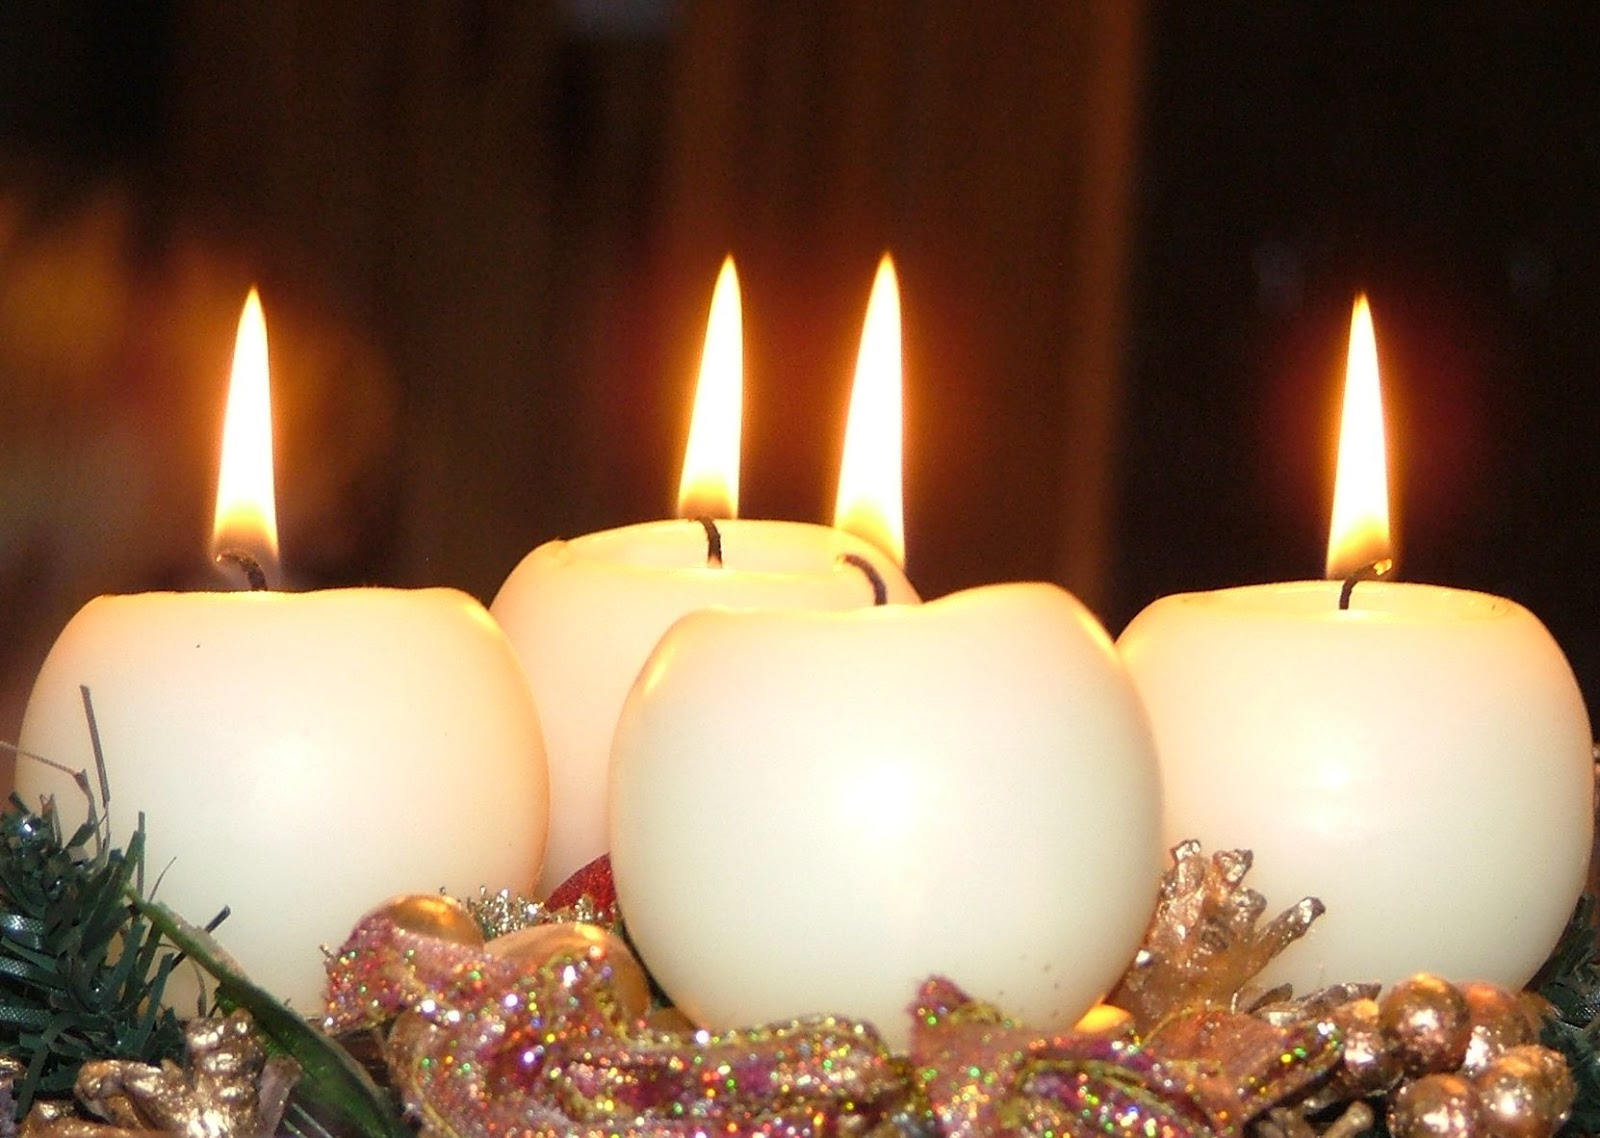 Christmas candle lights table decorations ideas images for Decorating ideas with candles